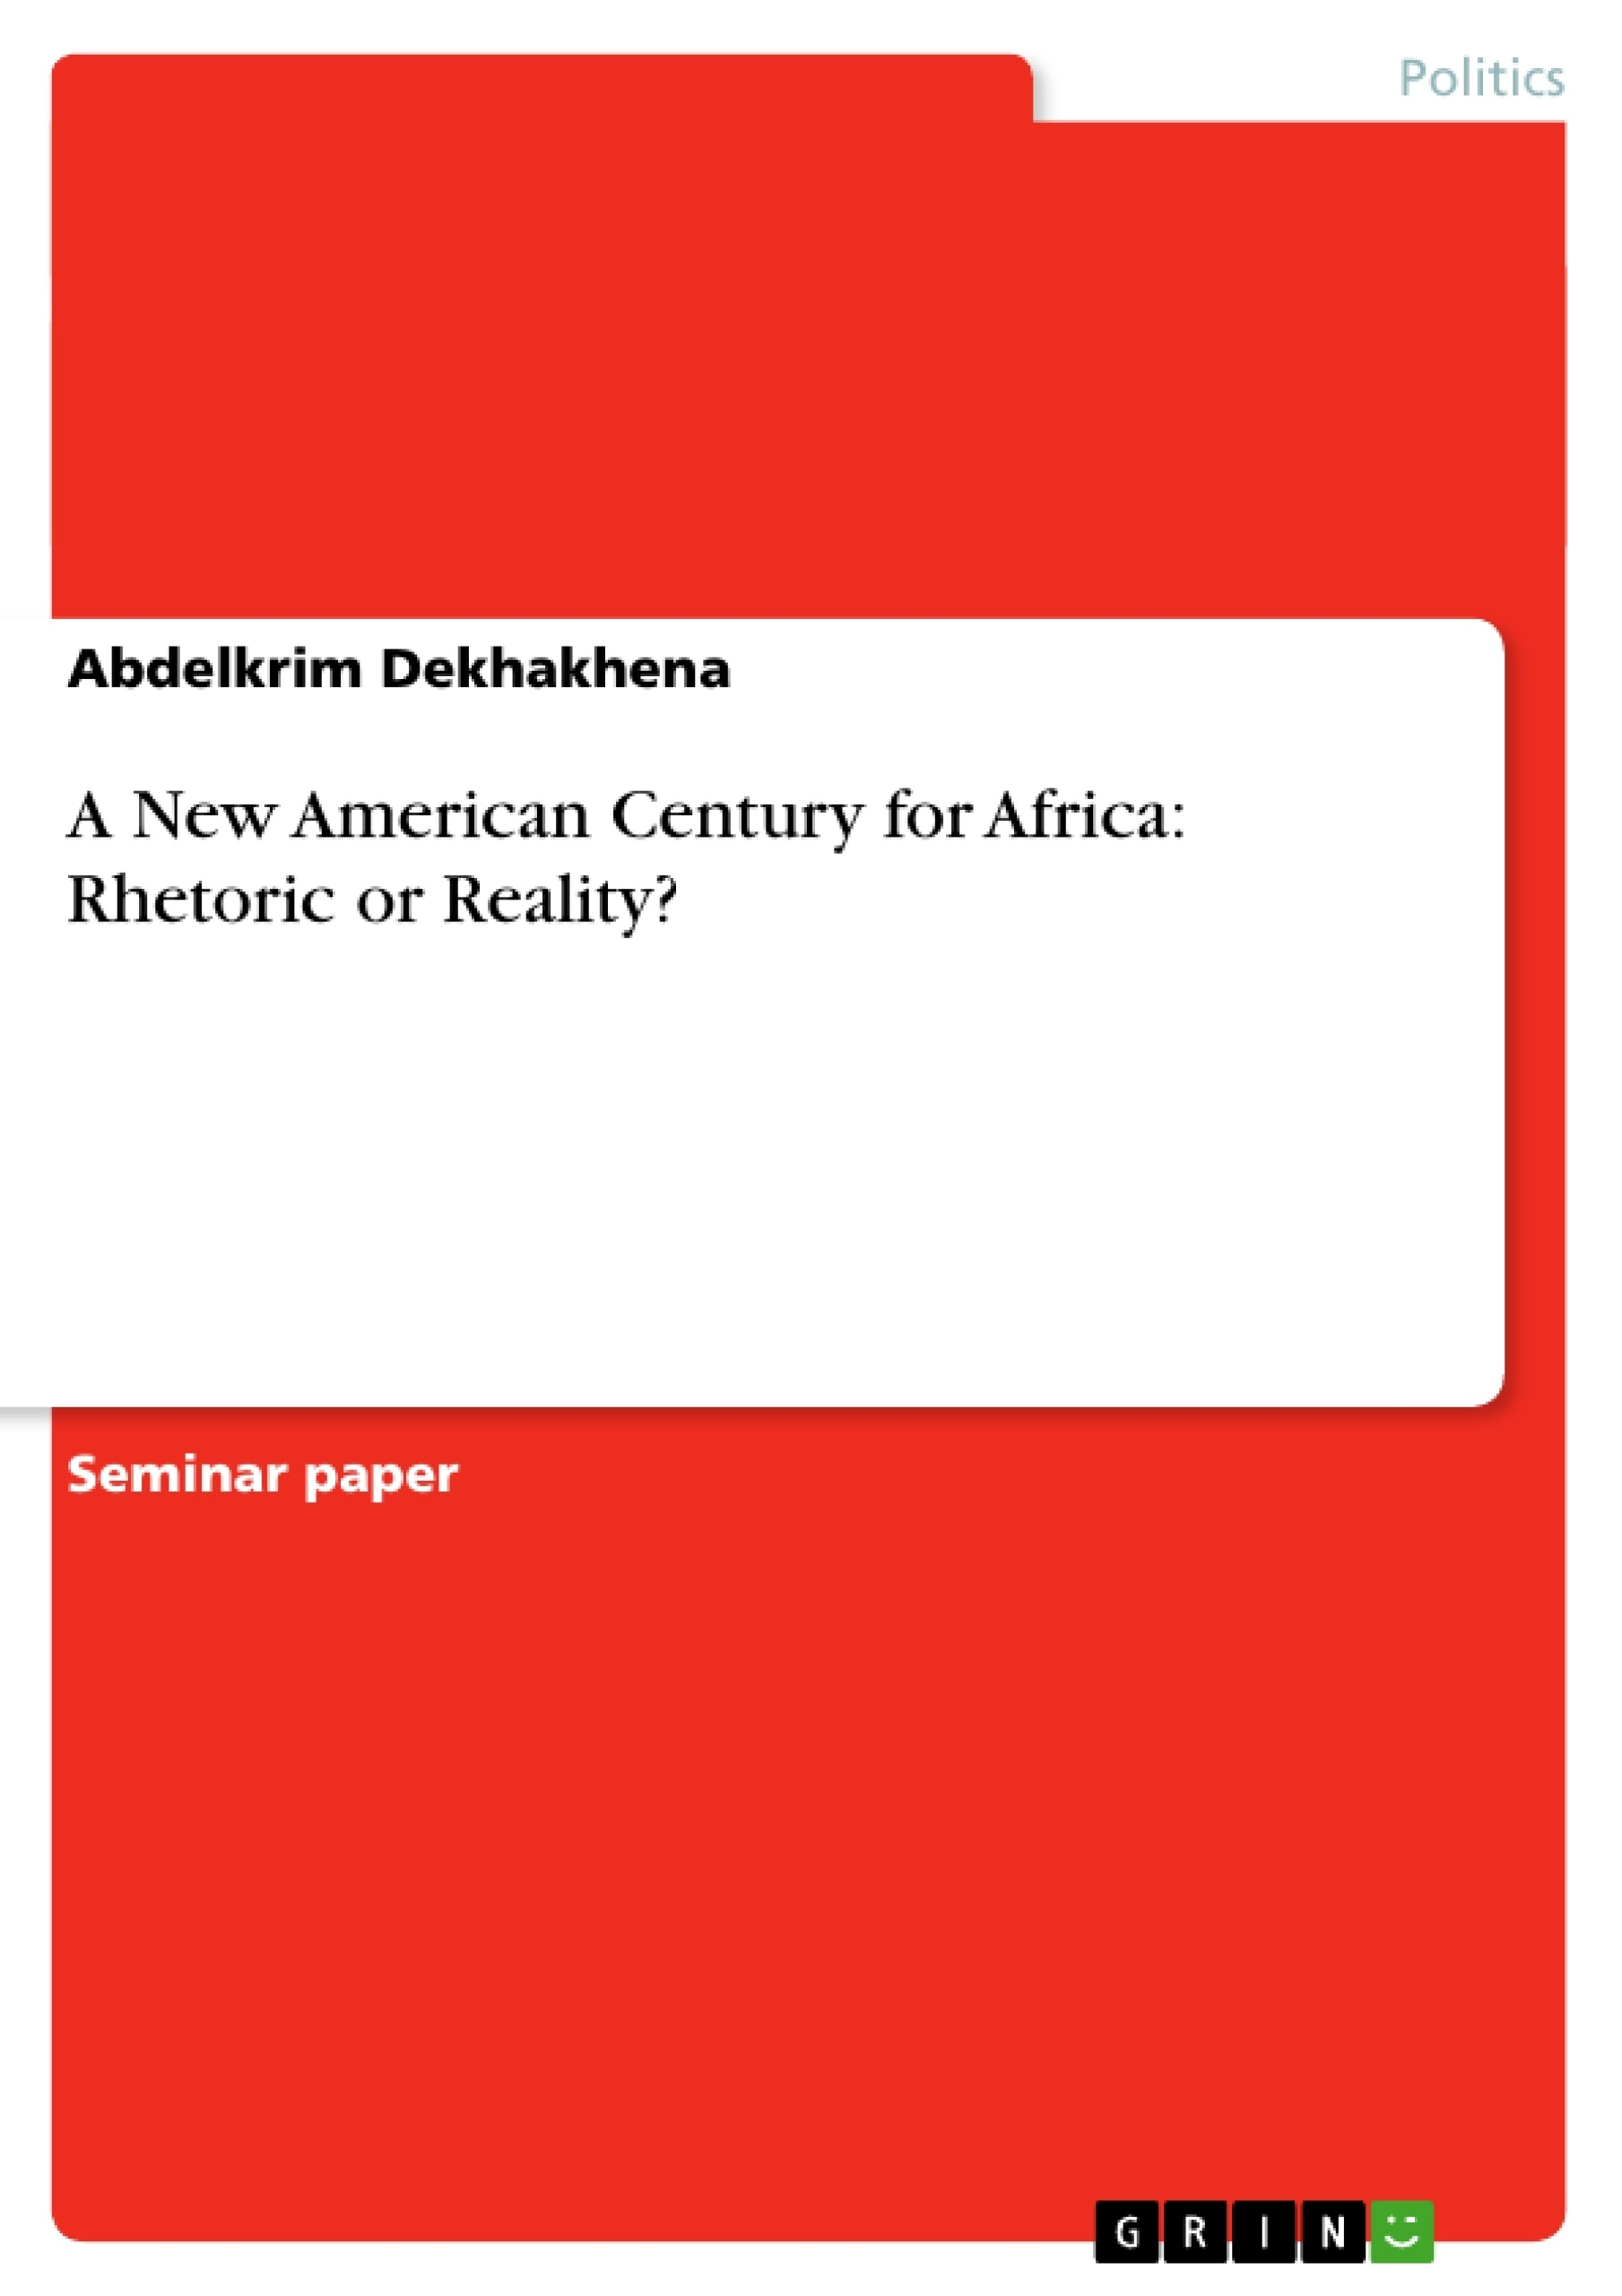 Title: A New American Century for Africa: Rhetoric or Reality?